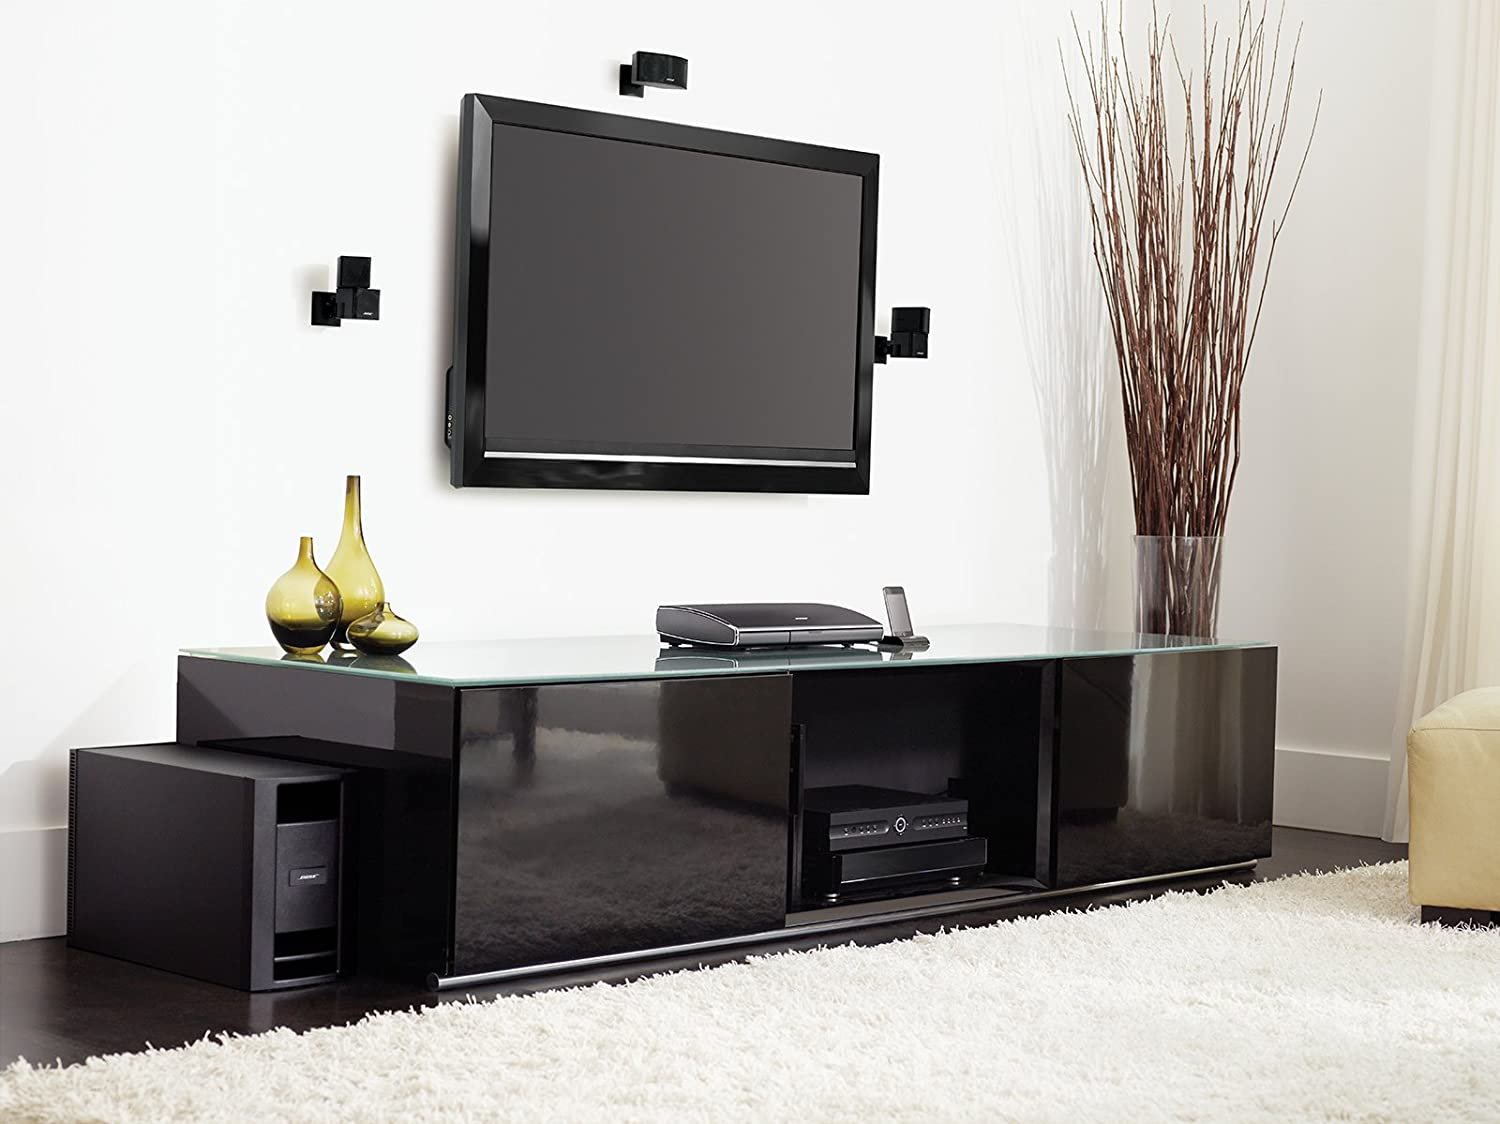 bose home theater setup. bose® lifestyle® v35 home theater system (discontinued by manufacturer): amazon.ca: electronics bose setup v